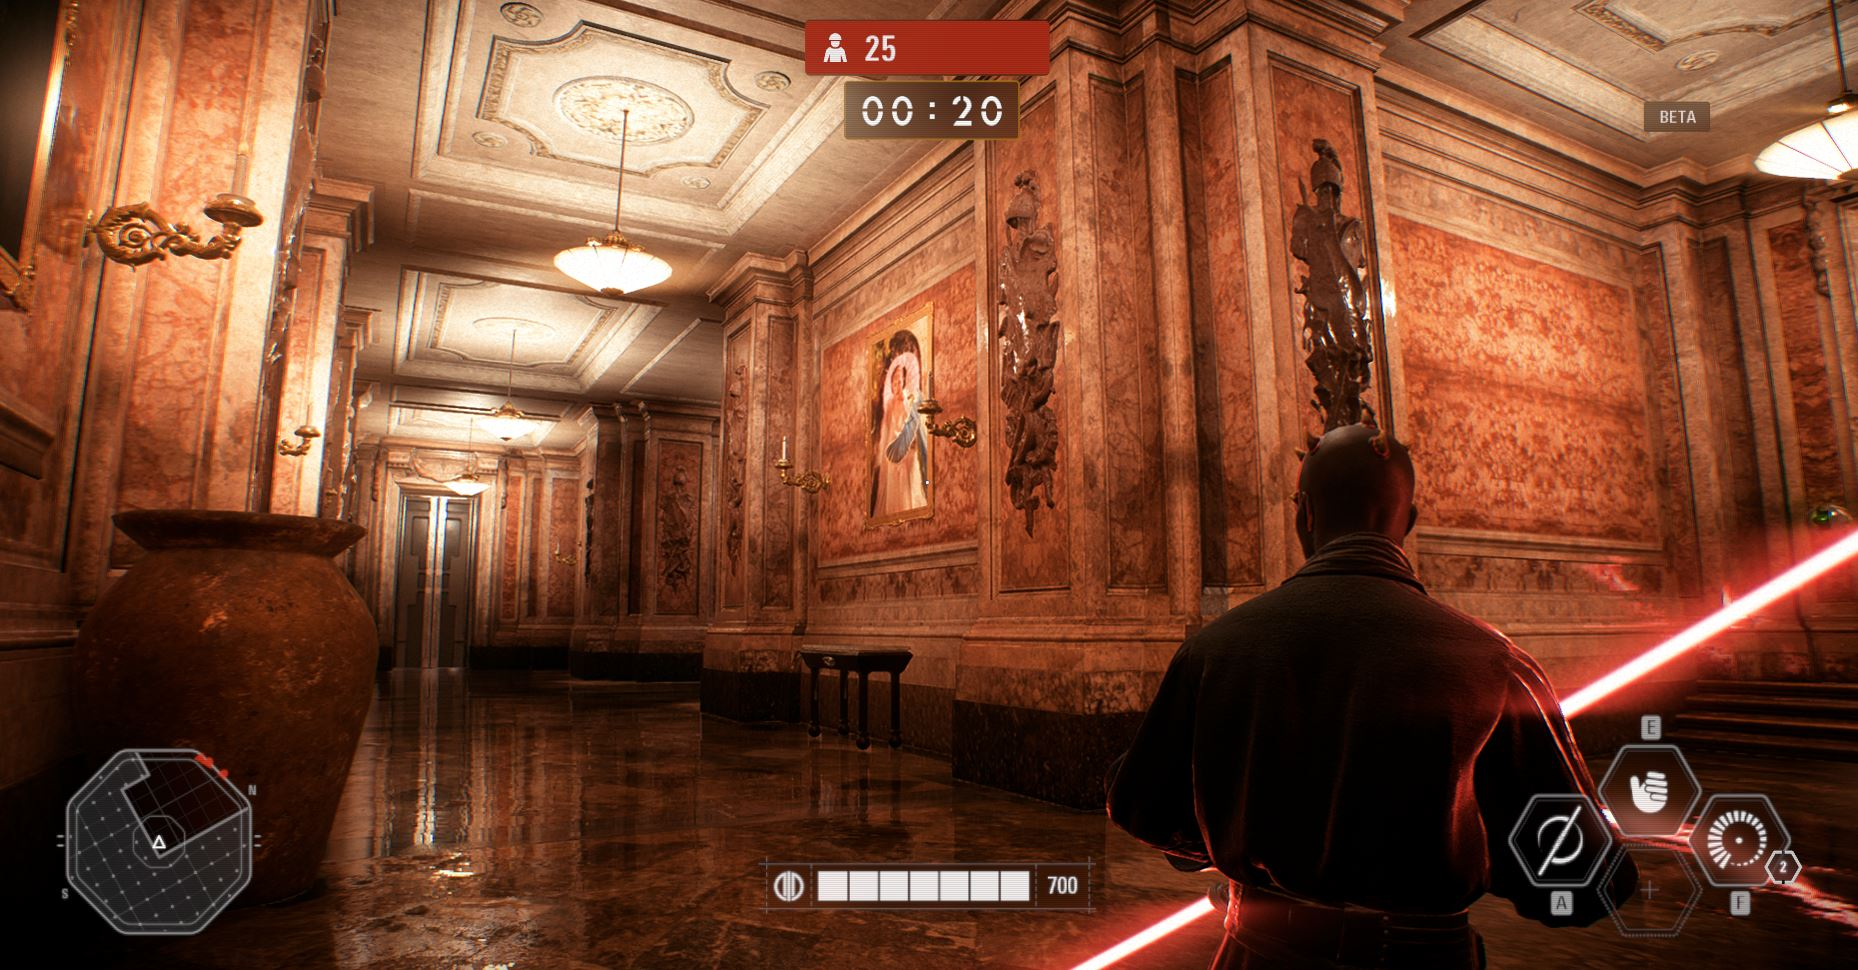 star wars battlefront 2 beta arcade mode